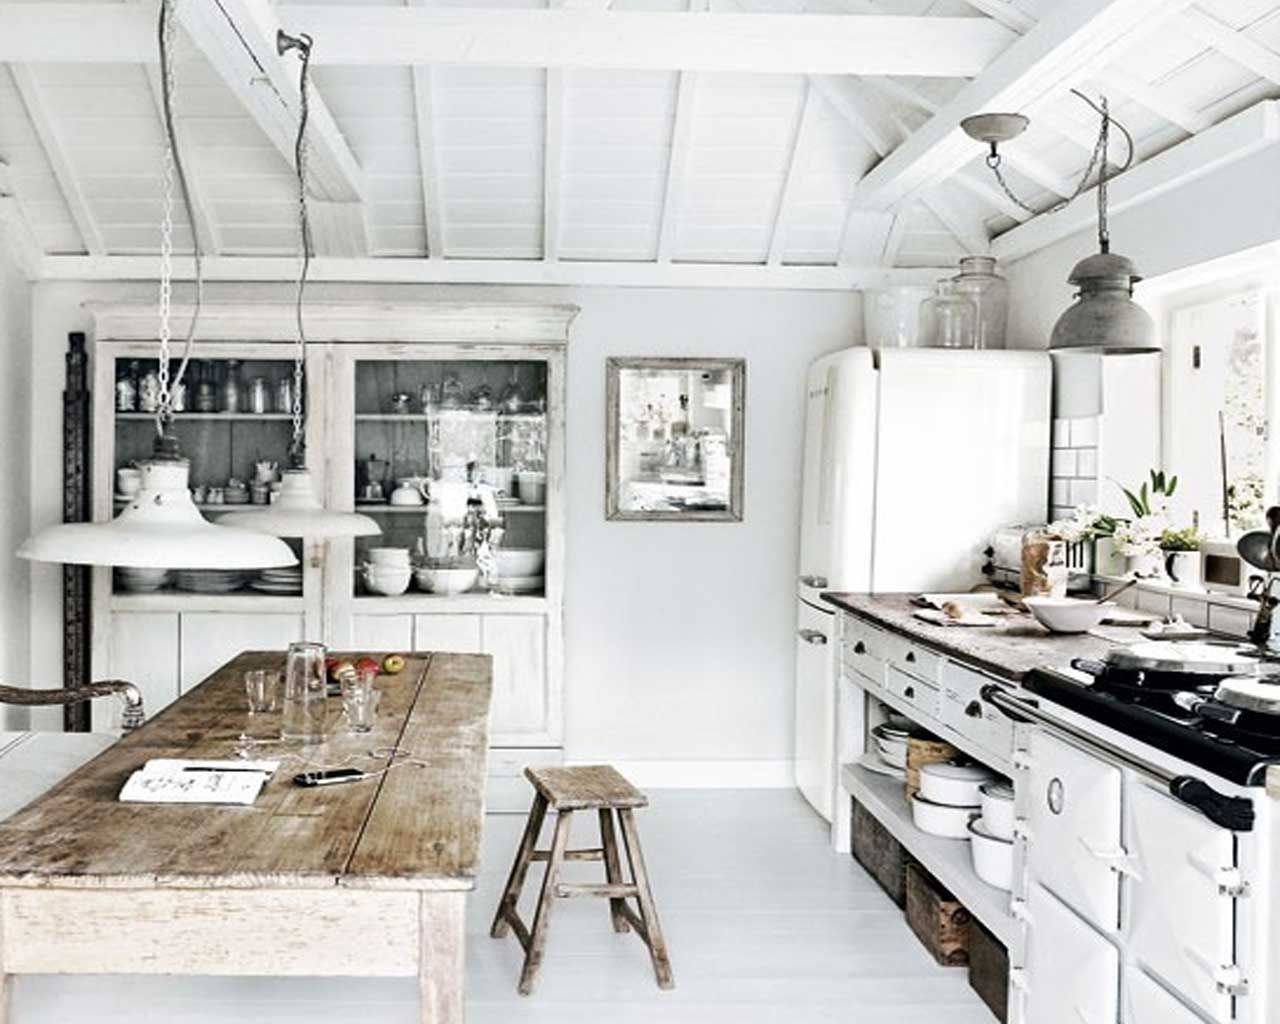 Rustic beach interior design rustic cottage kitchen interiors design in white wall home - Modern house interior design kitchen ...